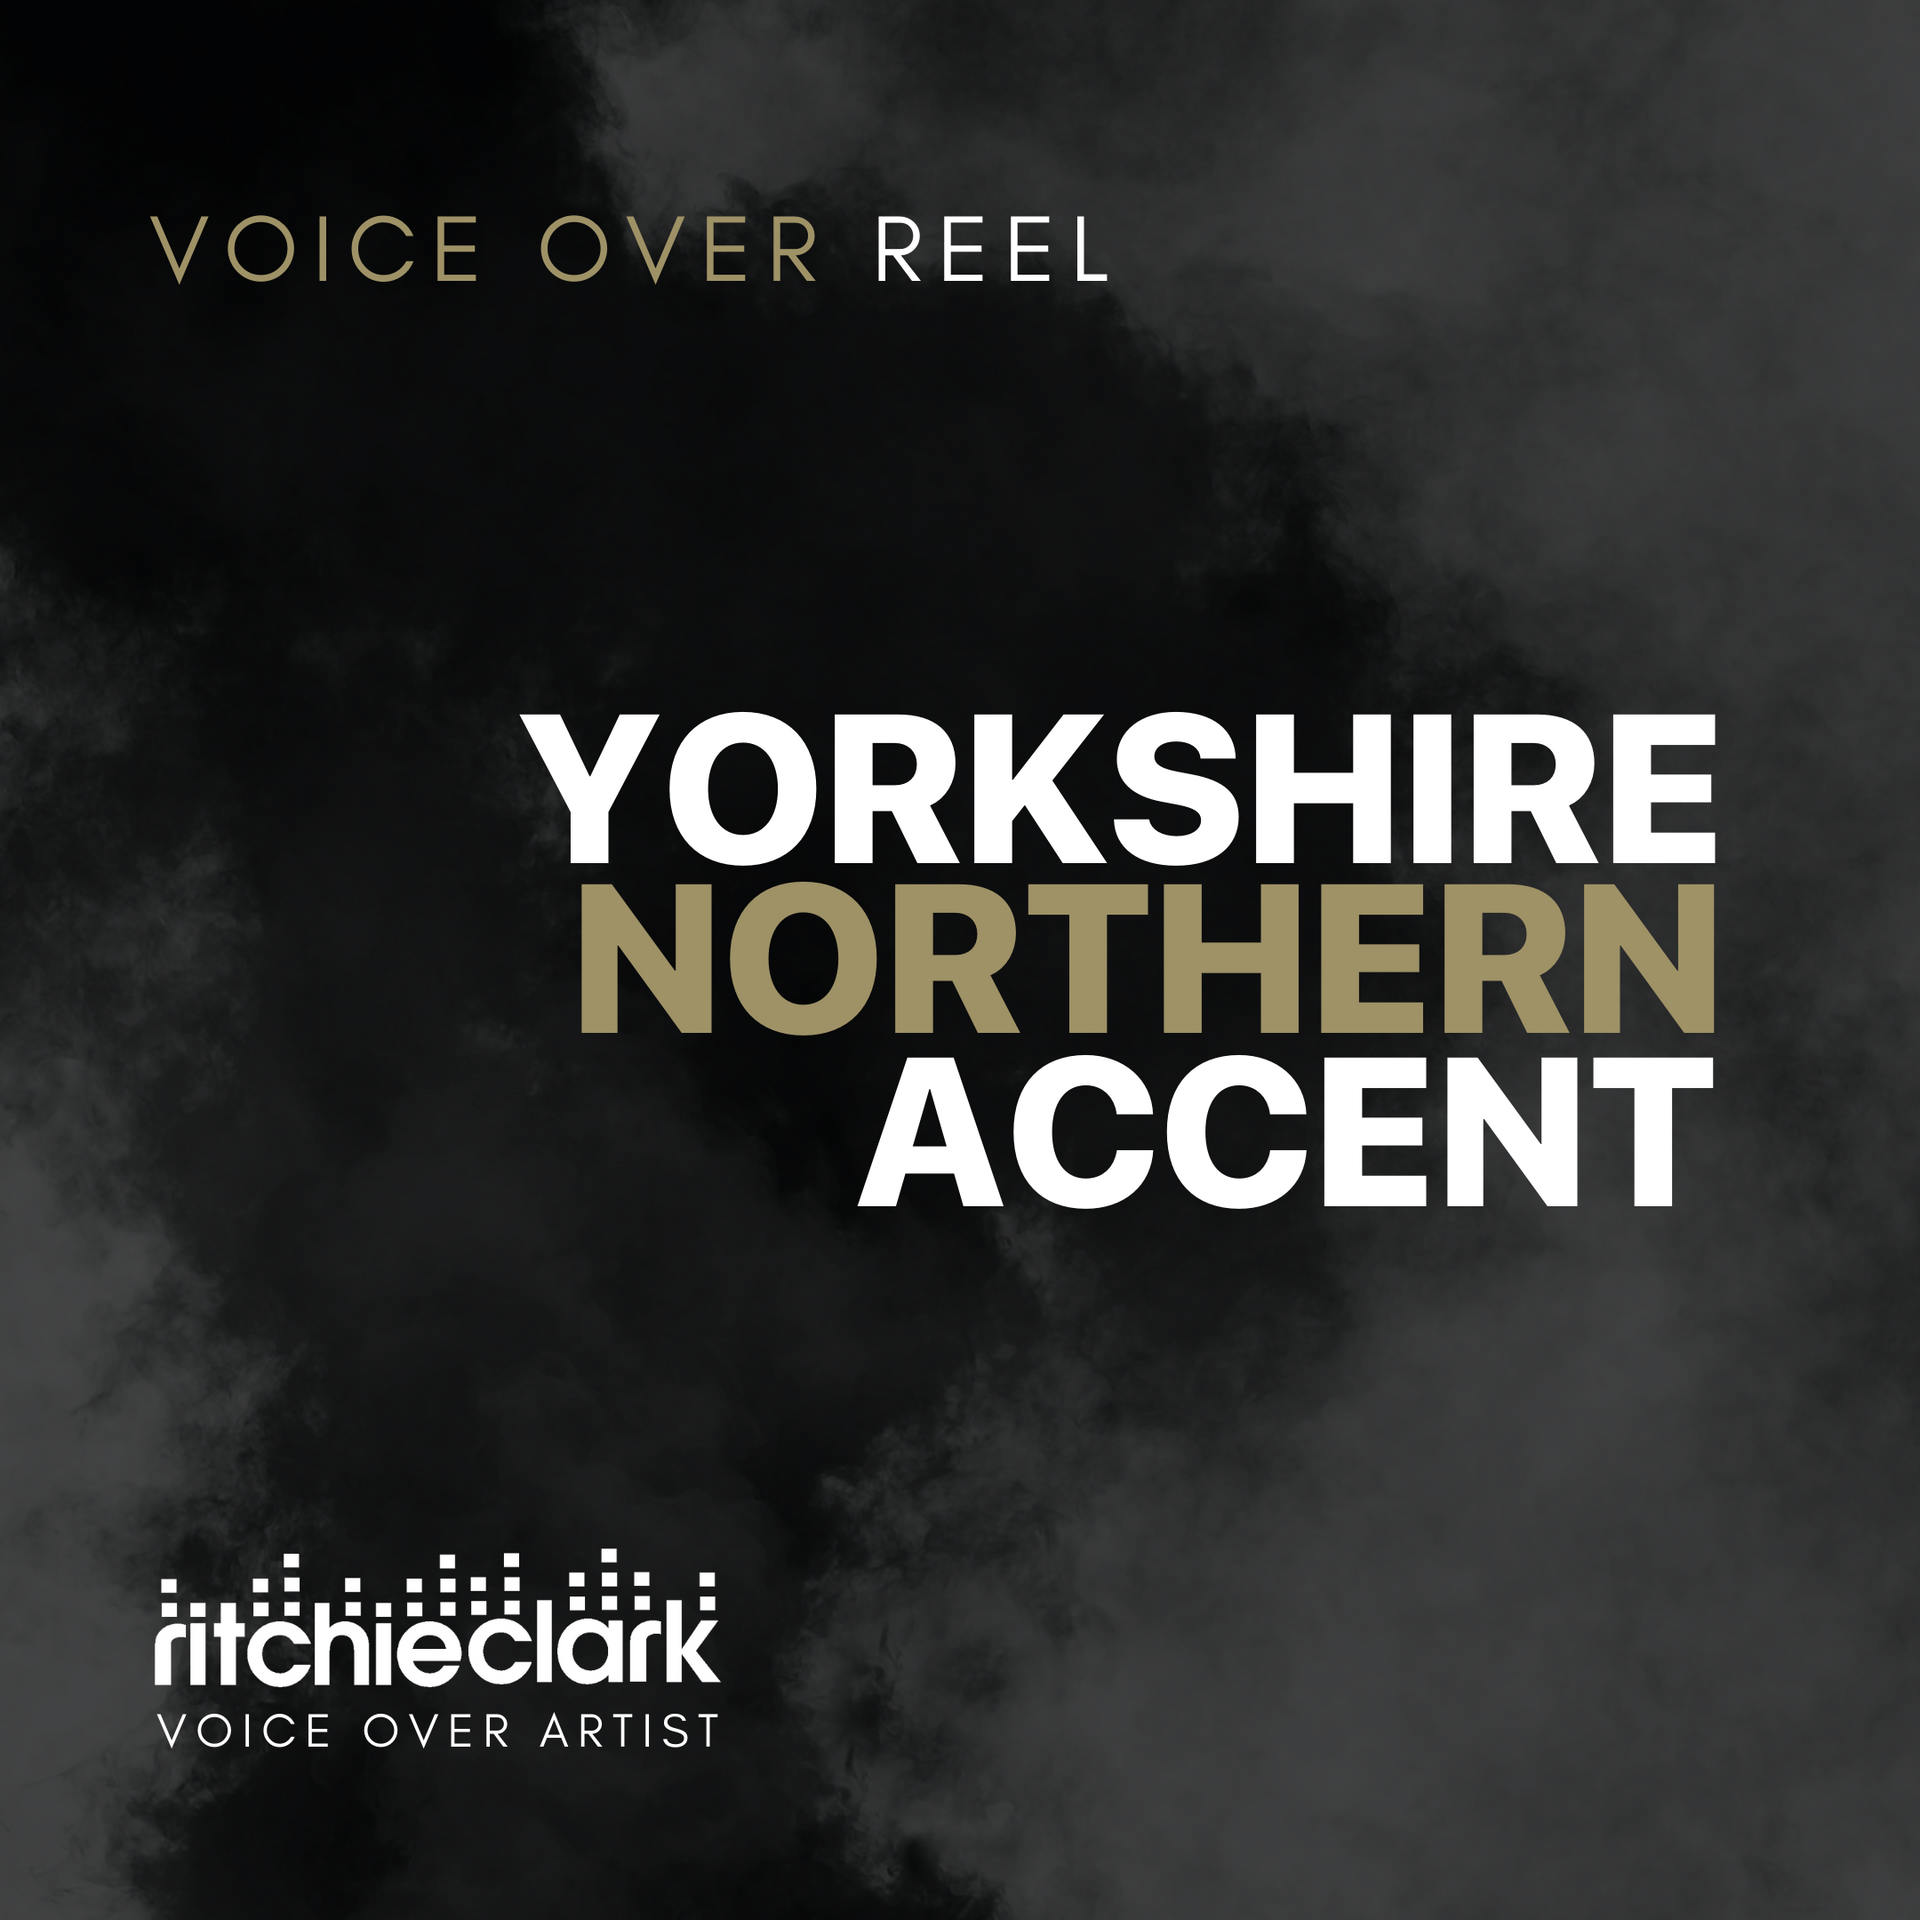 yorkshire-northern-accent-voice-over-ree